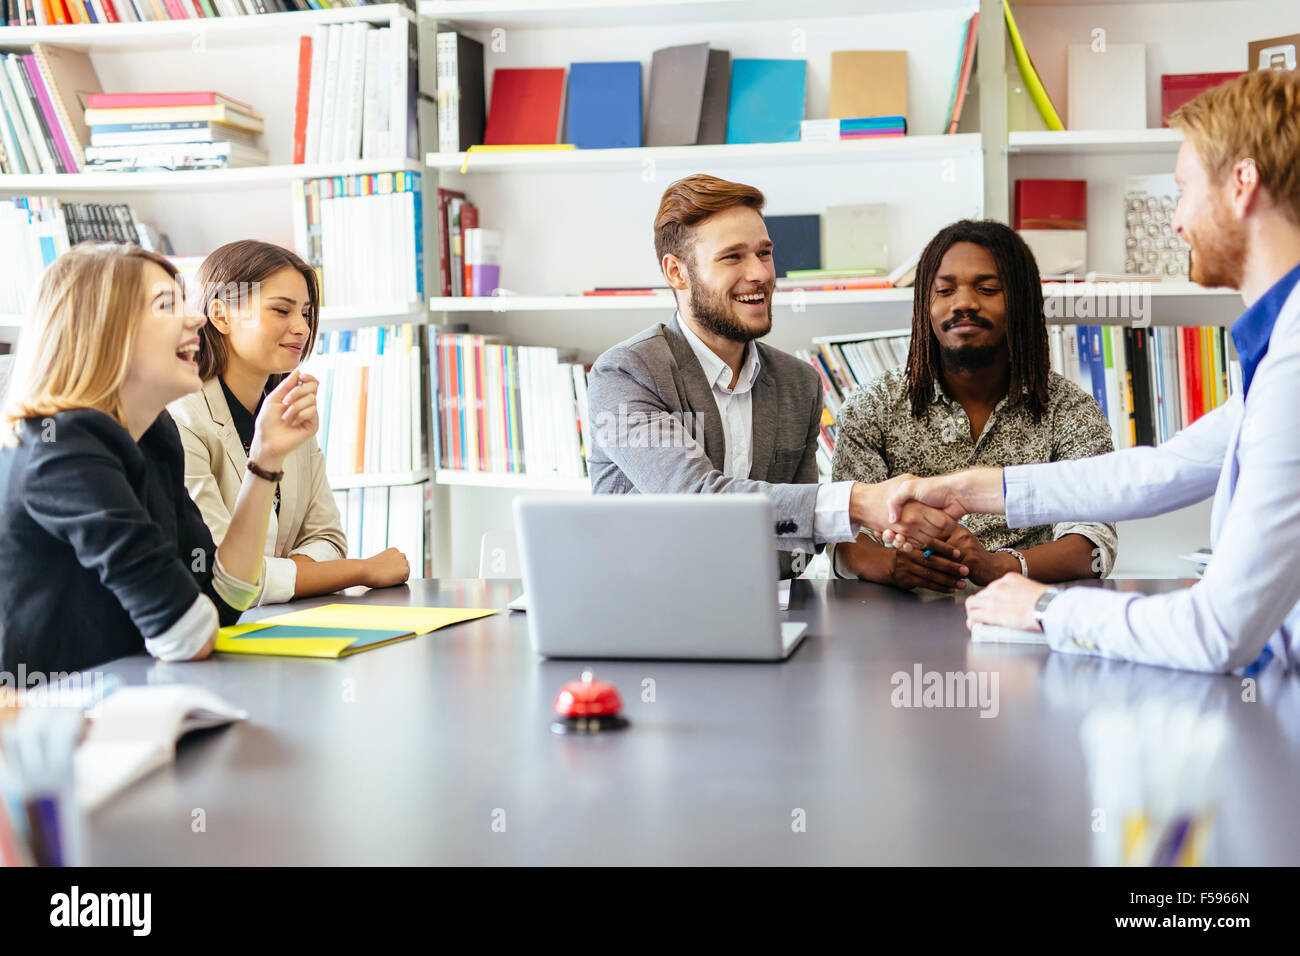 Businesspeople shaking hands in office with coworkers and staff sitting at the table with them - Stock Image